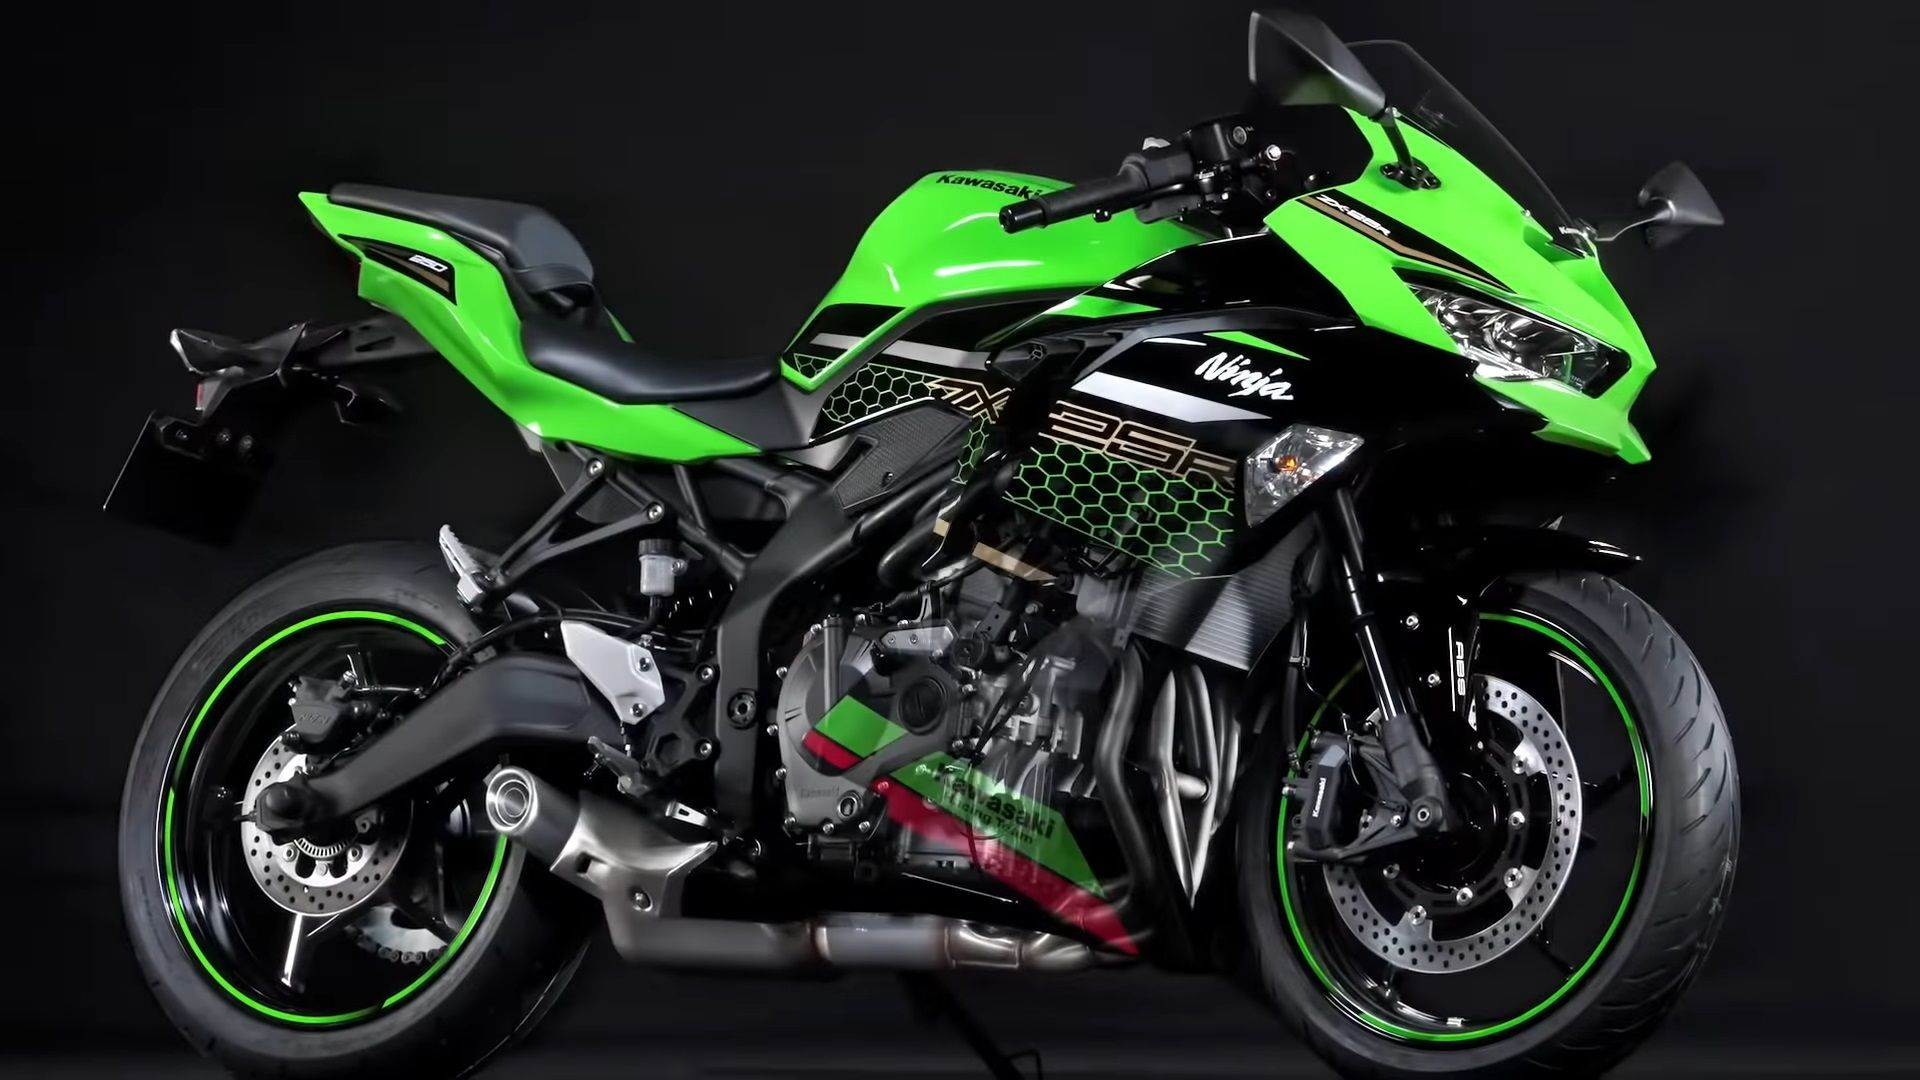 Kawasaki S Baby Ninja Zx 25r Is Quite The Screamer At 17 000 Rpm